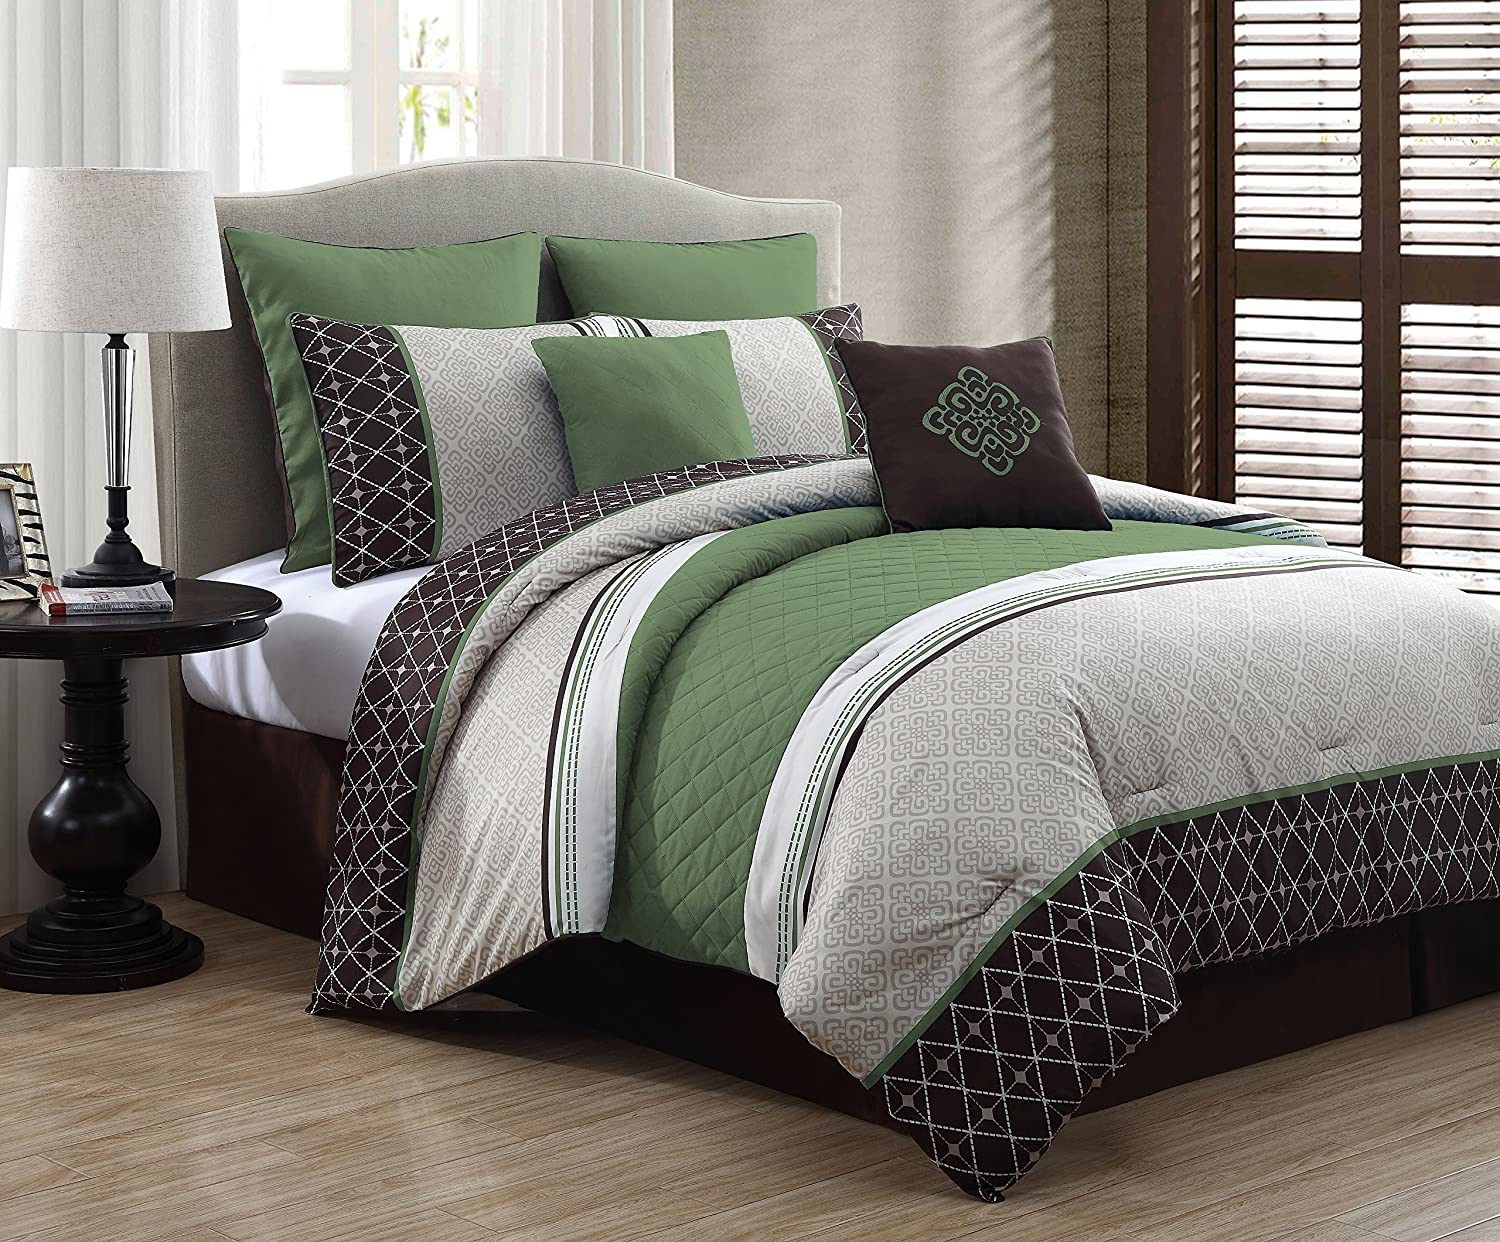 queen comforter green design set sumptuous exclusive